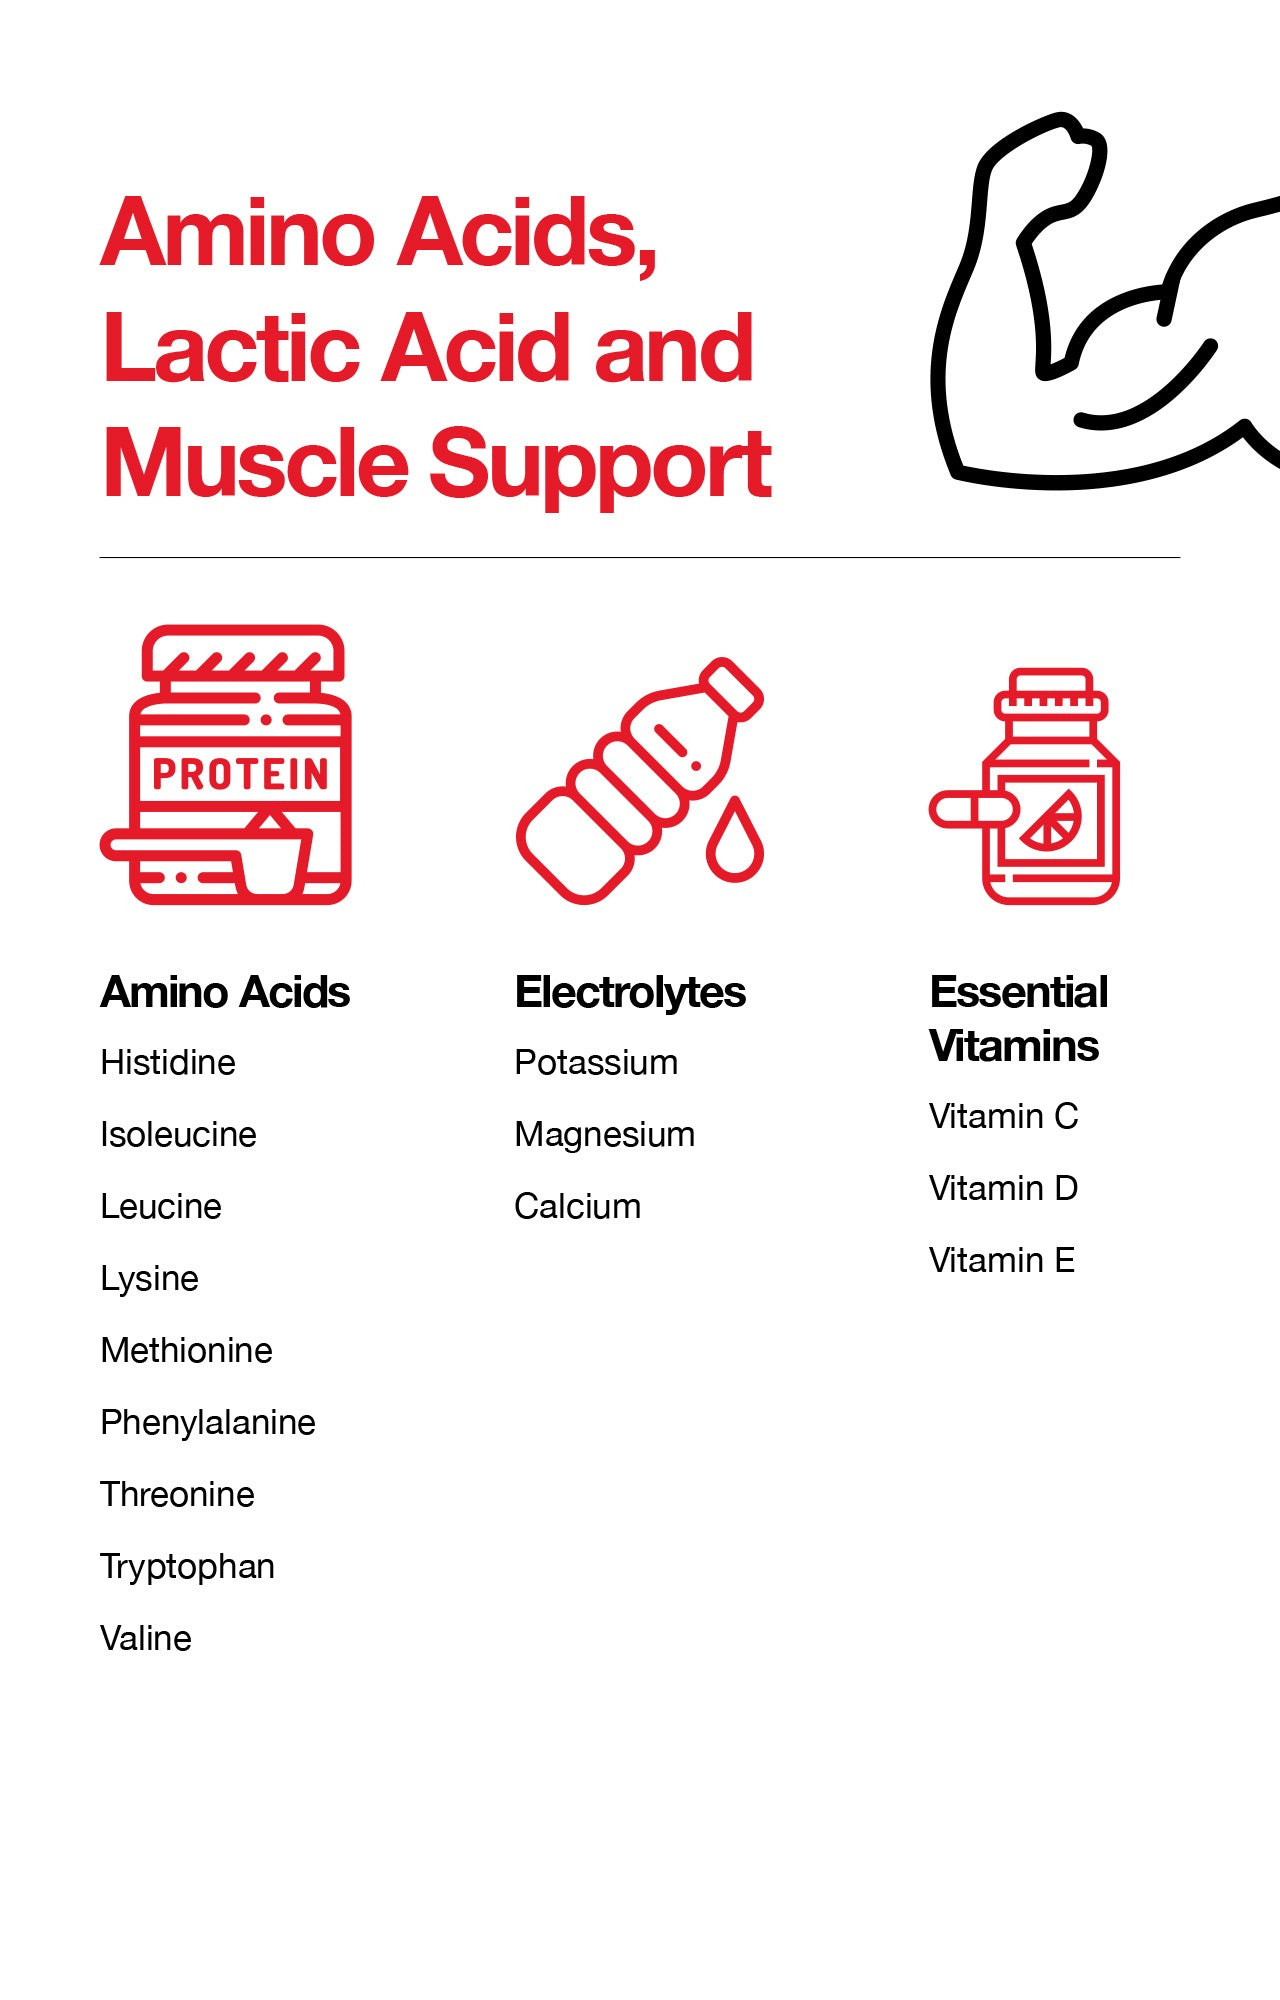 Amino Acids, Lactic Acid and Muscle Support